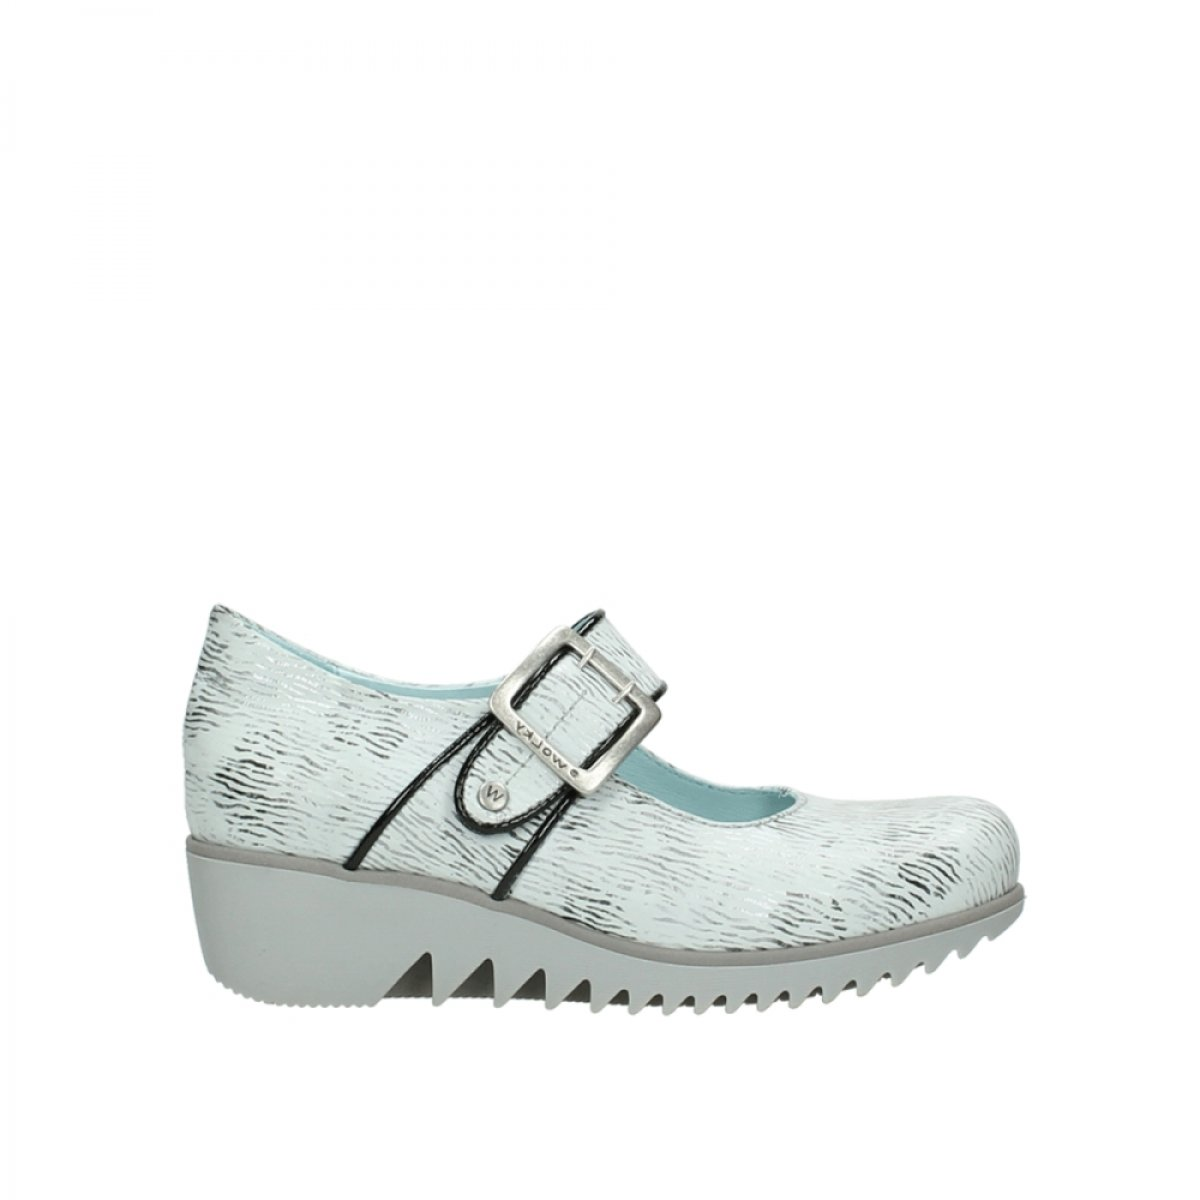 Wolky Comfort Mary Janes Silky B01N7SB379 41 M EU|70110 White/Black Canal Leather